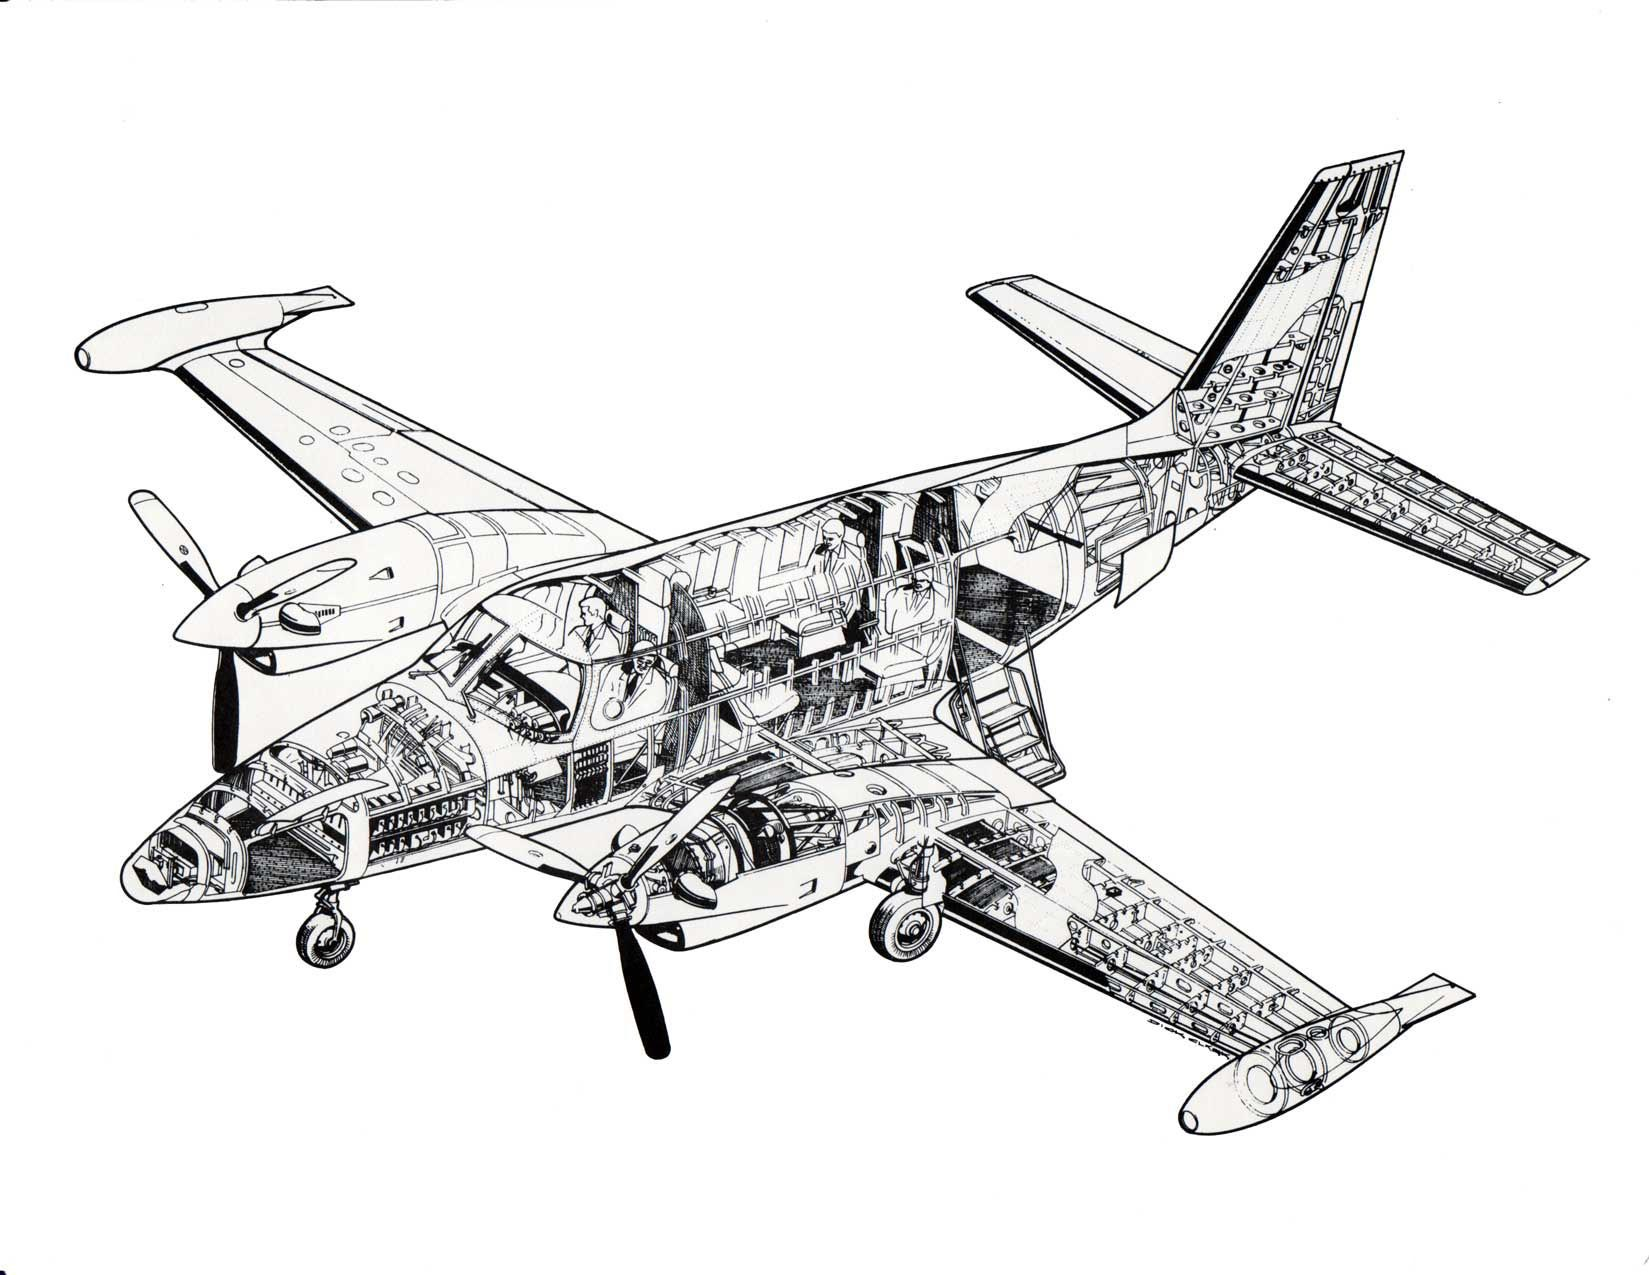 Piper PA-31T Cheyenne cutaway drawing